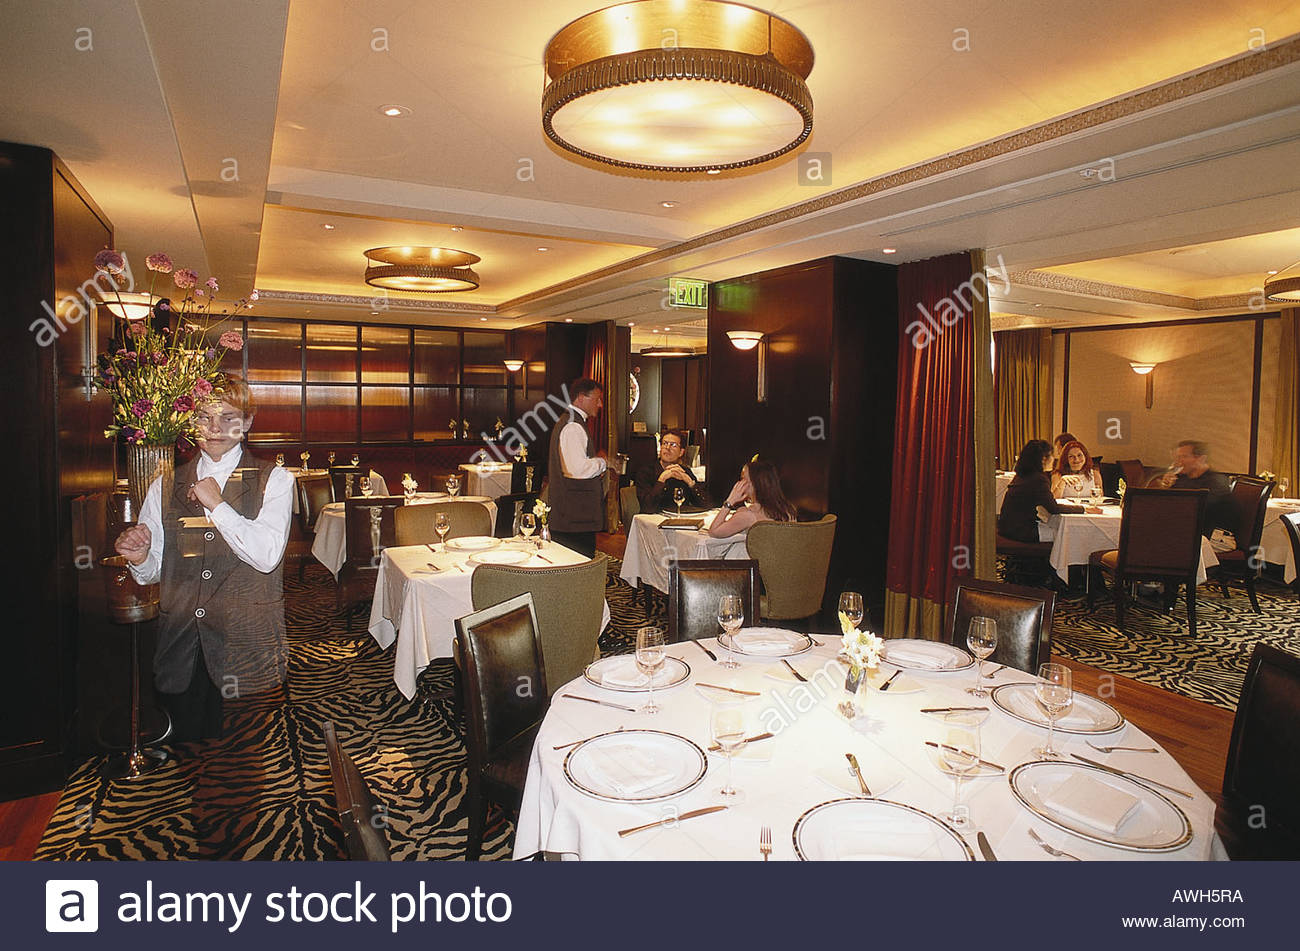 USA, California, San Francisco, Fifth Floor Restaurant, Waiter Serving  People Seated At Table, Blurred Motion